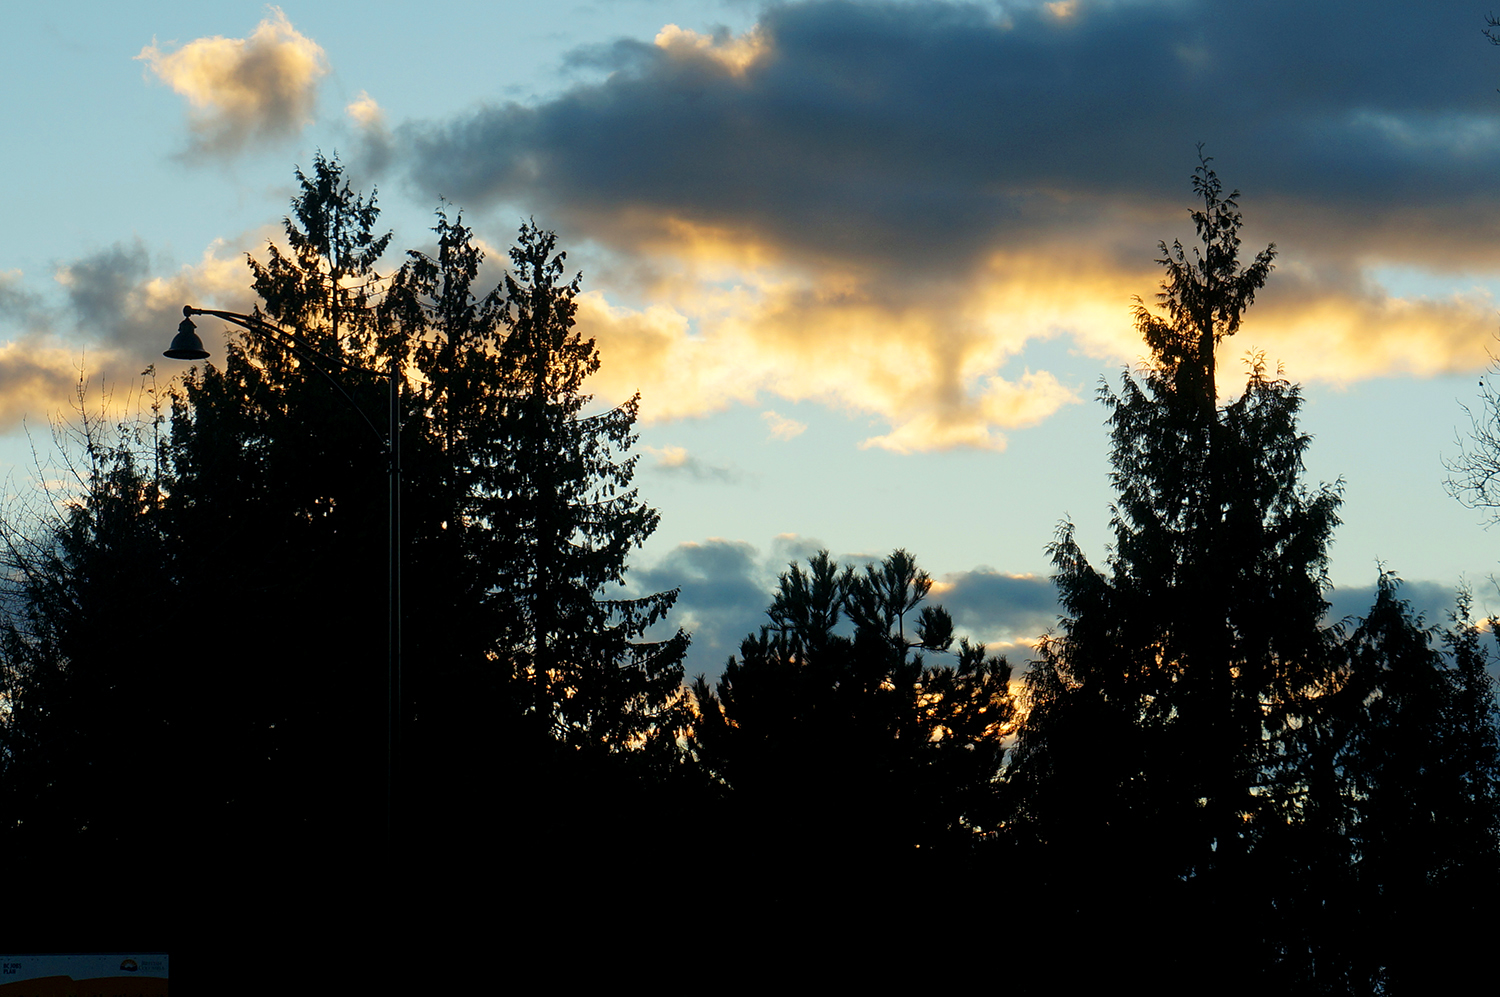 Sunset with pine tree silhouettes